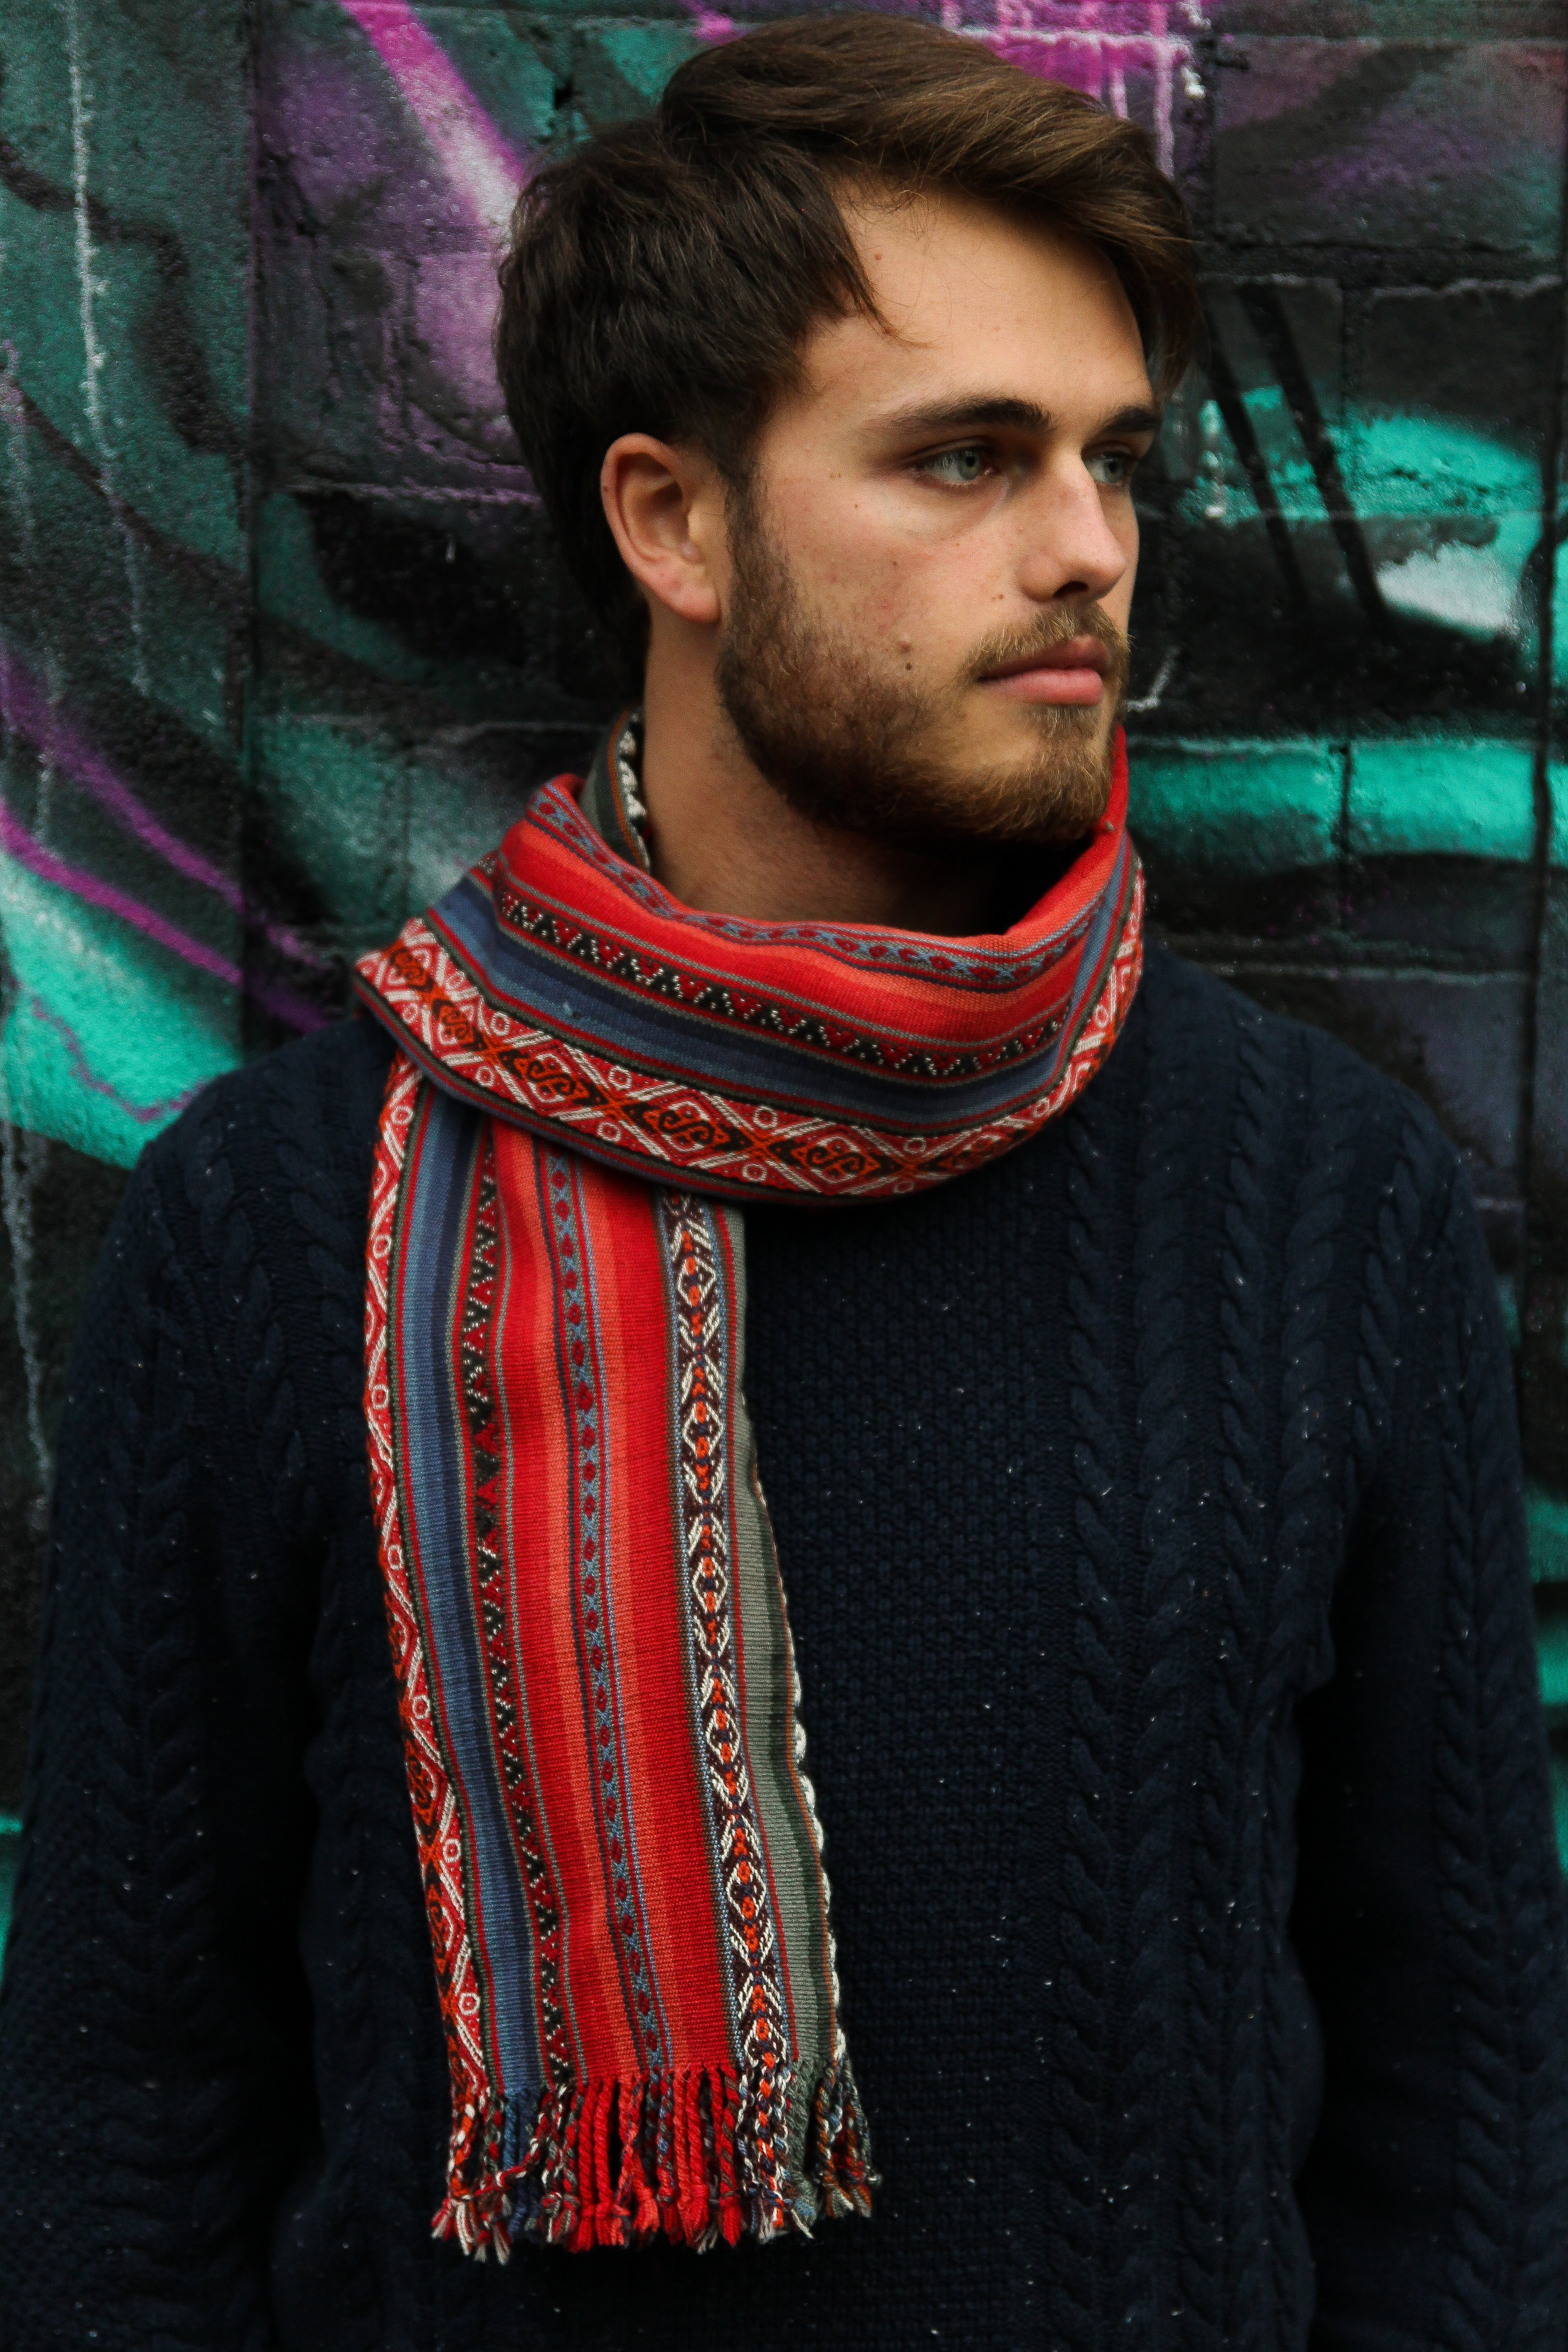 Harry Janes, featuring a handmade alpaca scarf from Chinchero, Peru